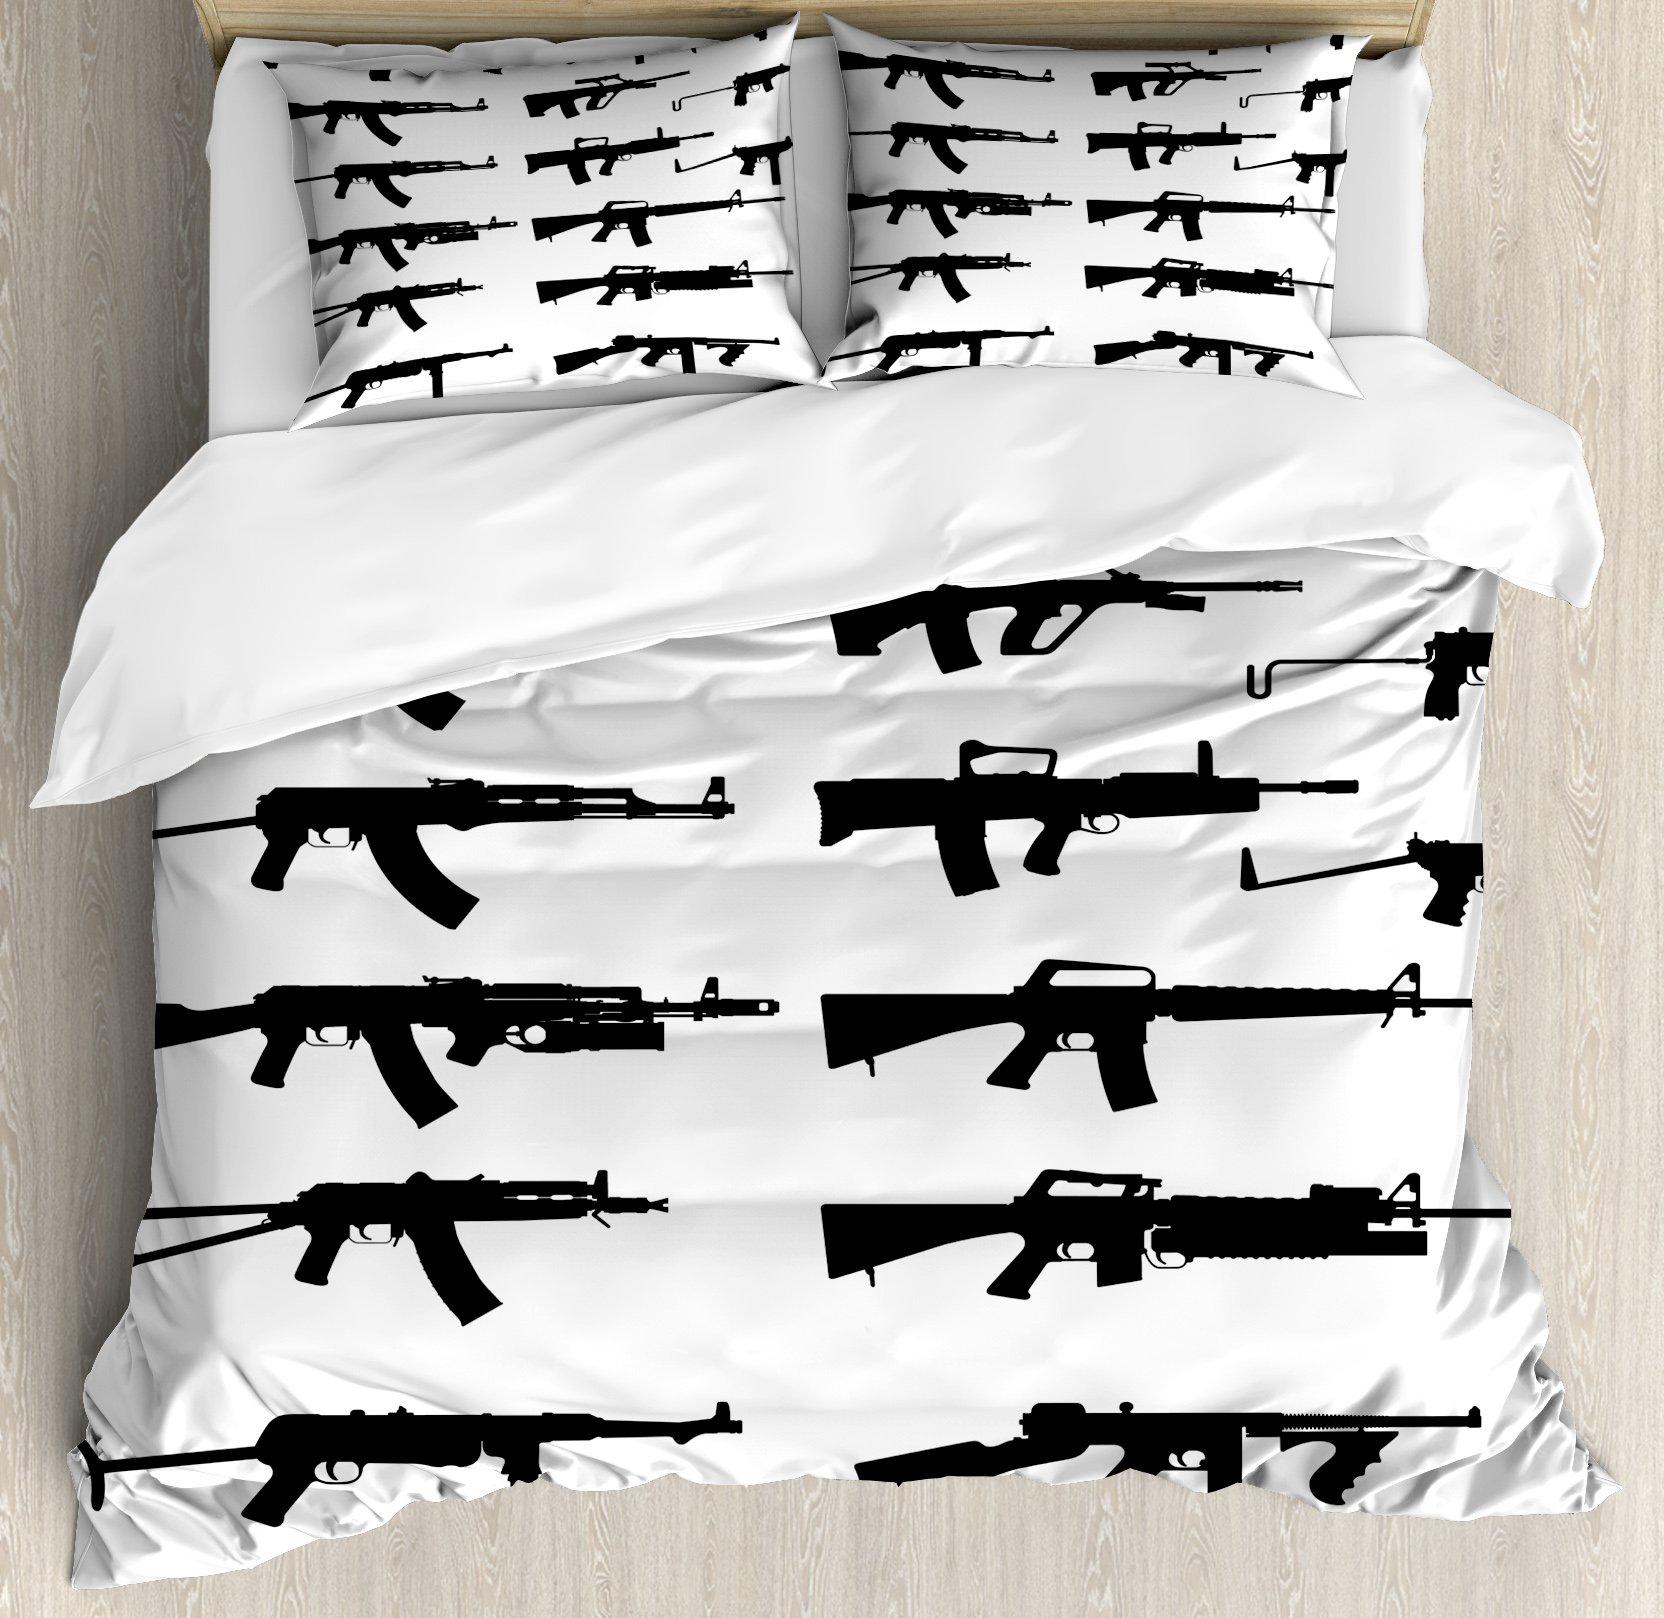 Military Duvet Cover Set King Size by Ambesonne, Silhouette of Various Size Guns Weapons Pistols Revolvers War Army Power Concept, Decorative 3 Piece Bedding Set with 2 Pillow Shams, Black White